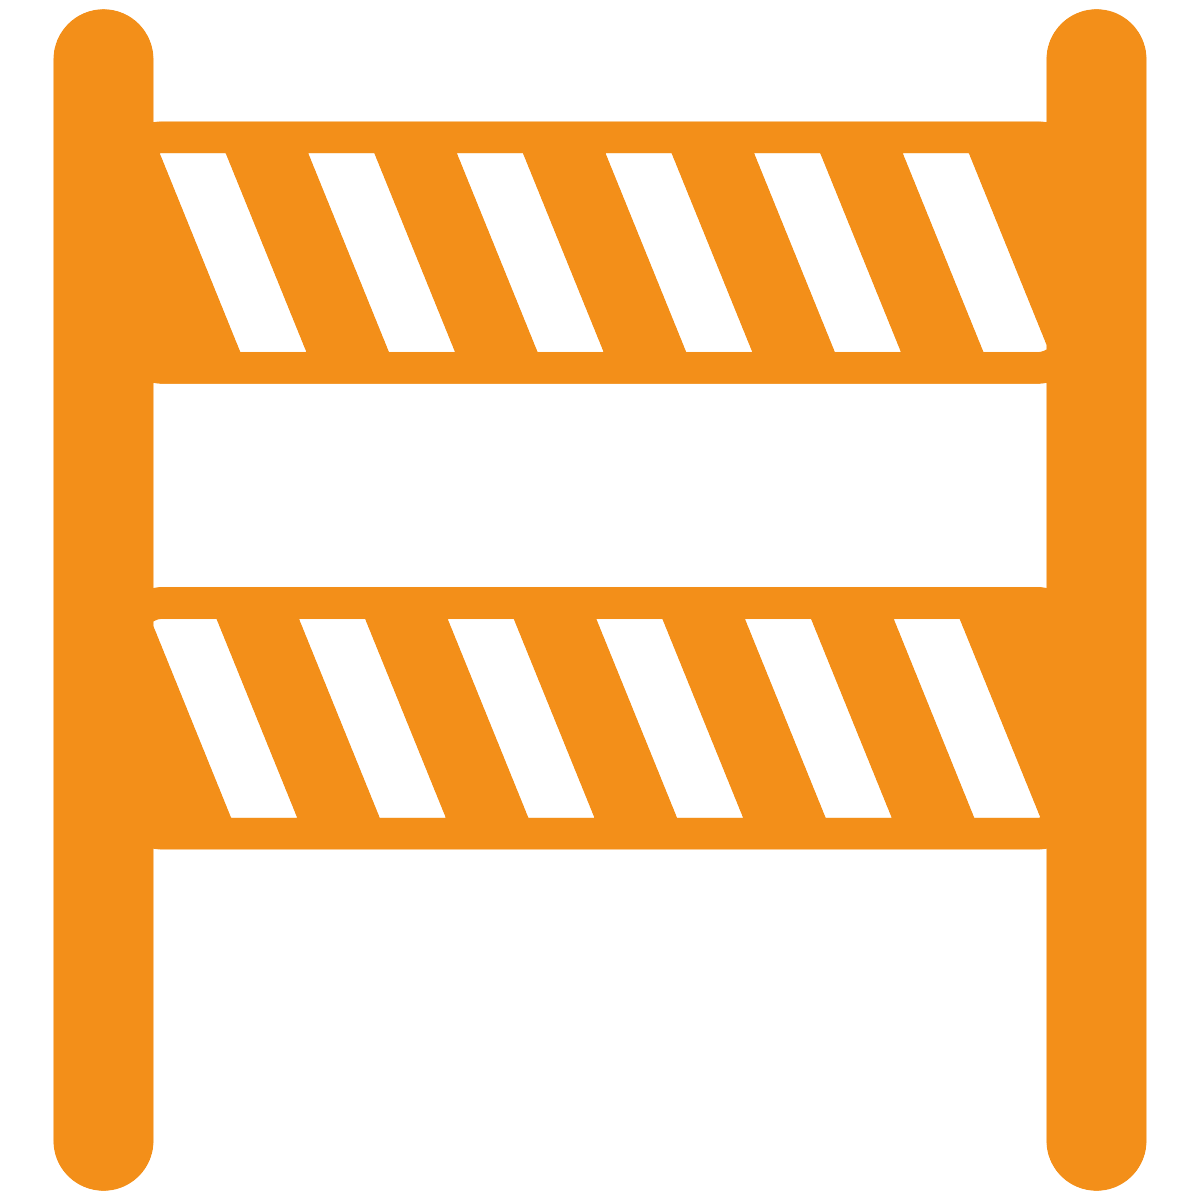 Orange traffic barrier